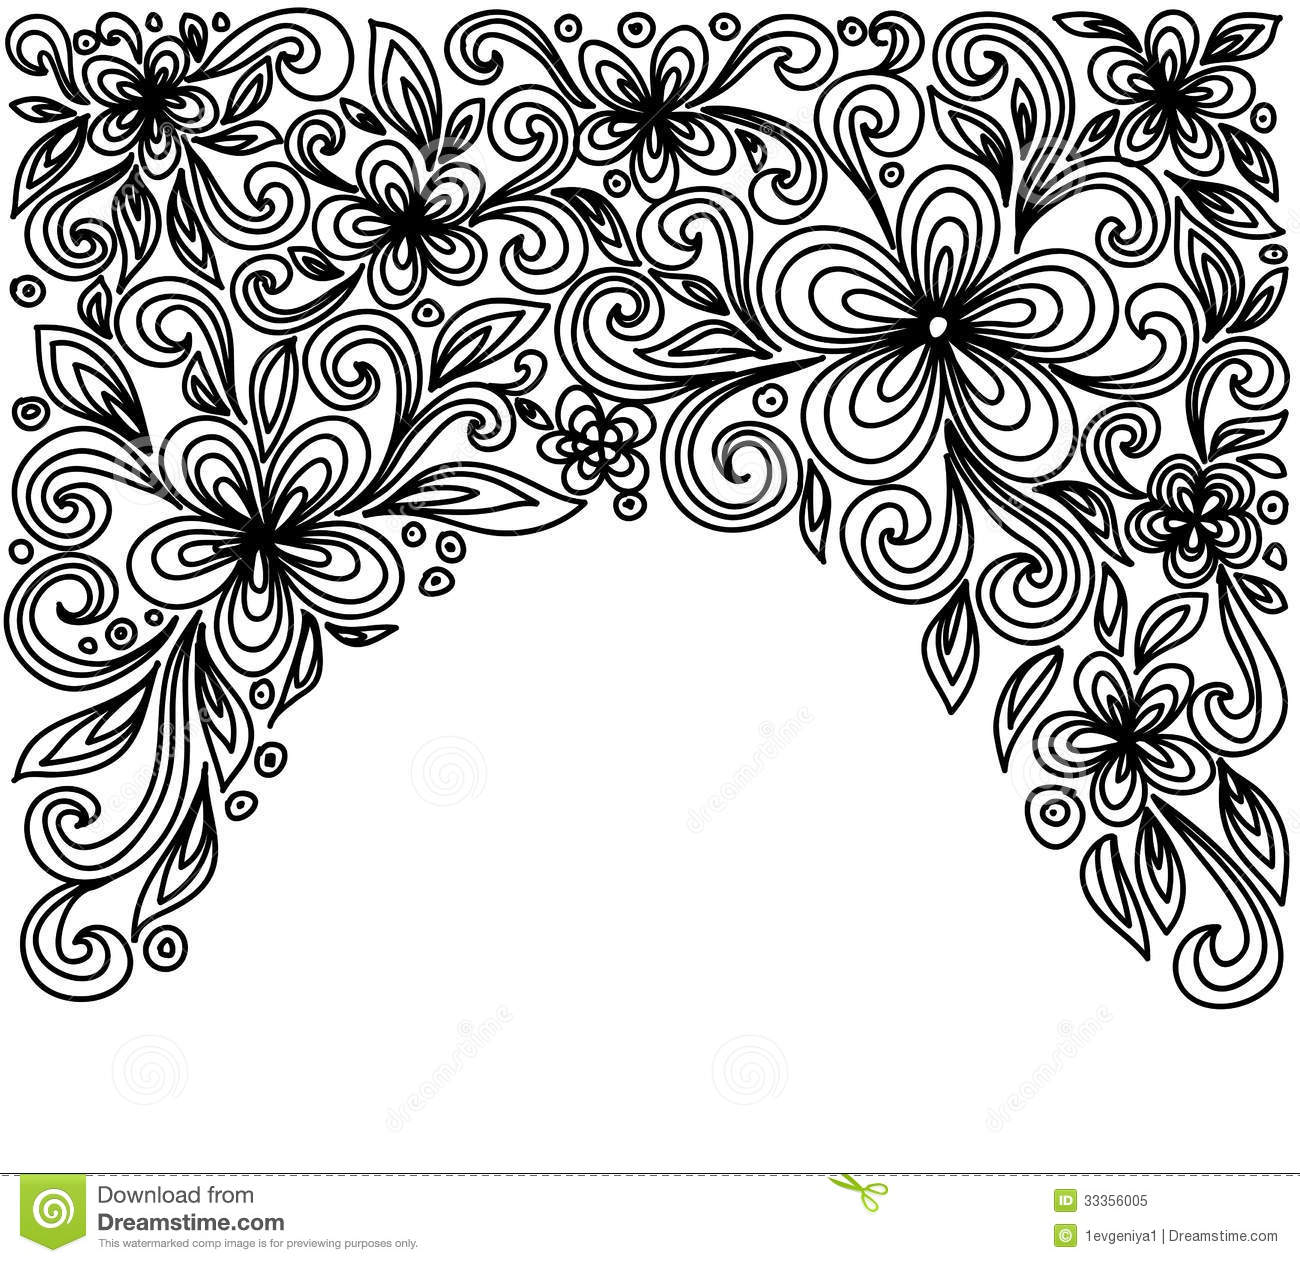 Black And White Lace Flowers And Leaves Isolated On White